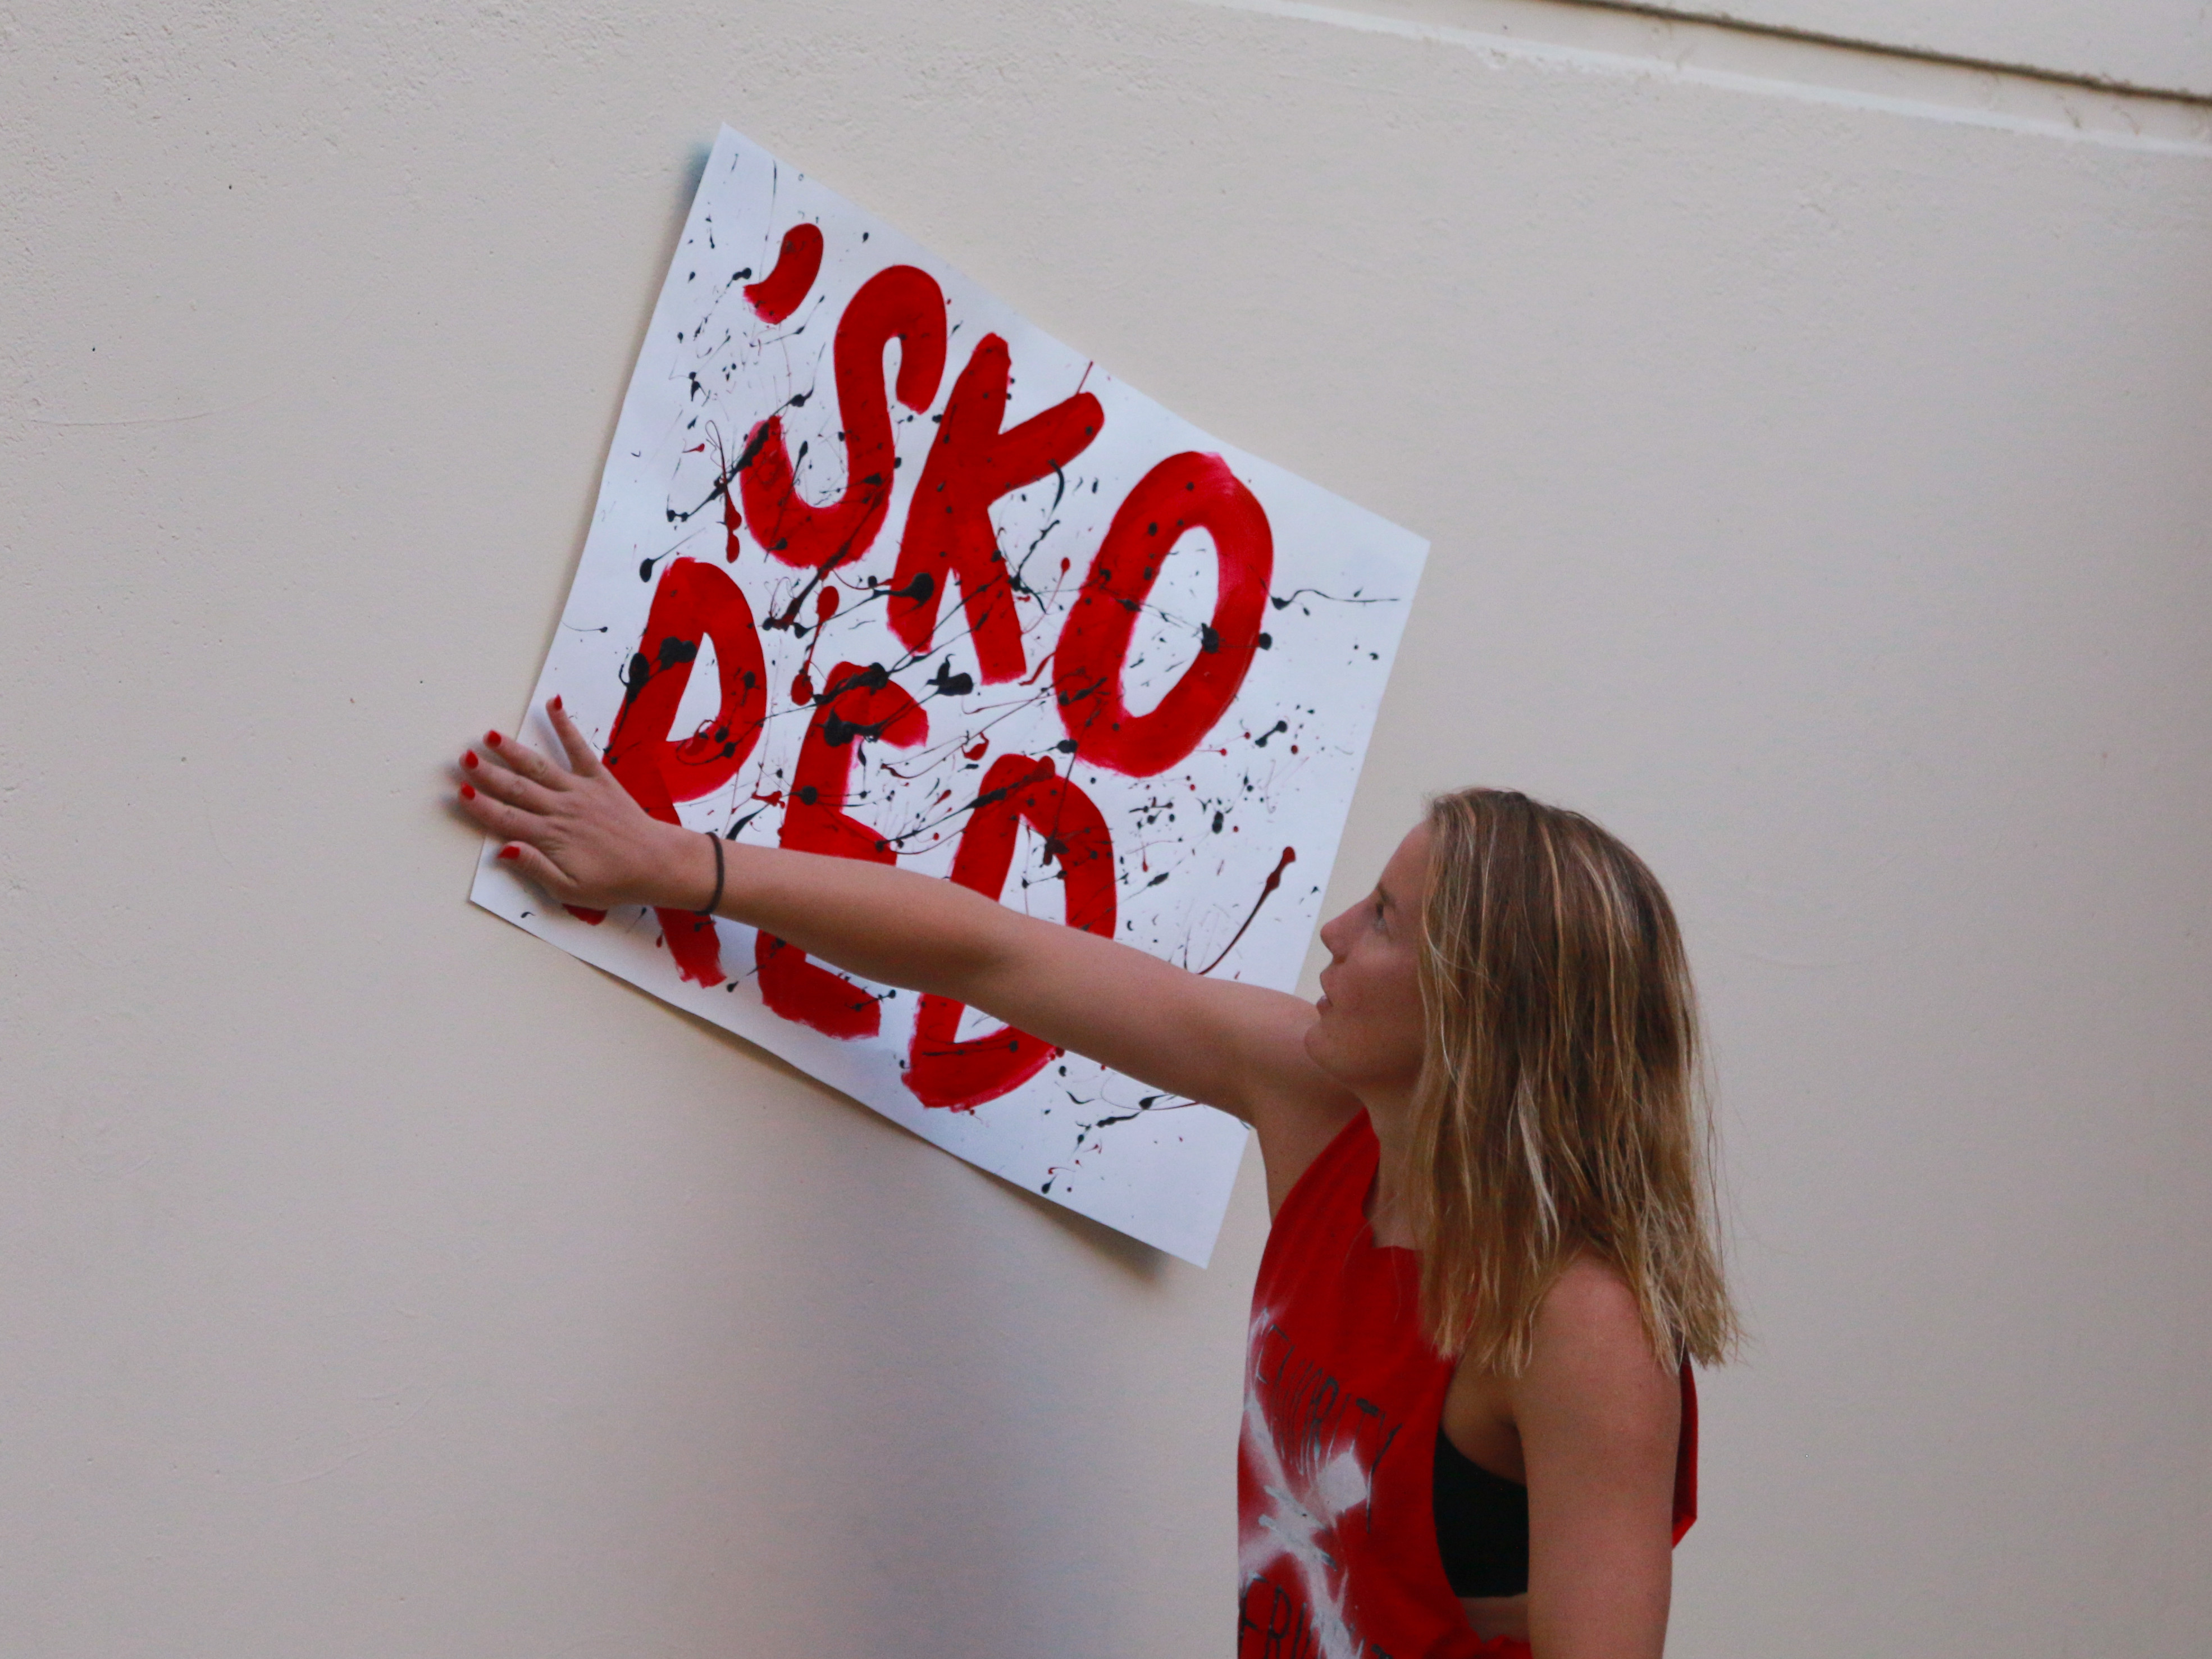 The morning of the game, junior Sydney Turner puts up Red Team decorations. (Photo by Hermione Xian)